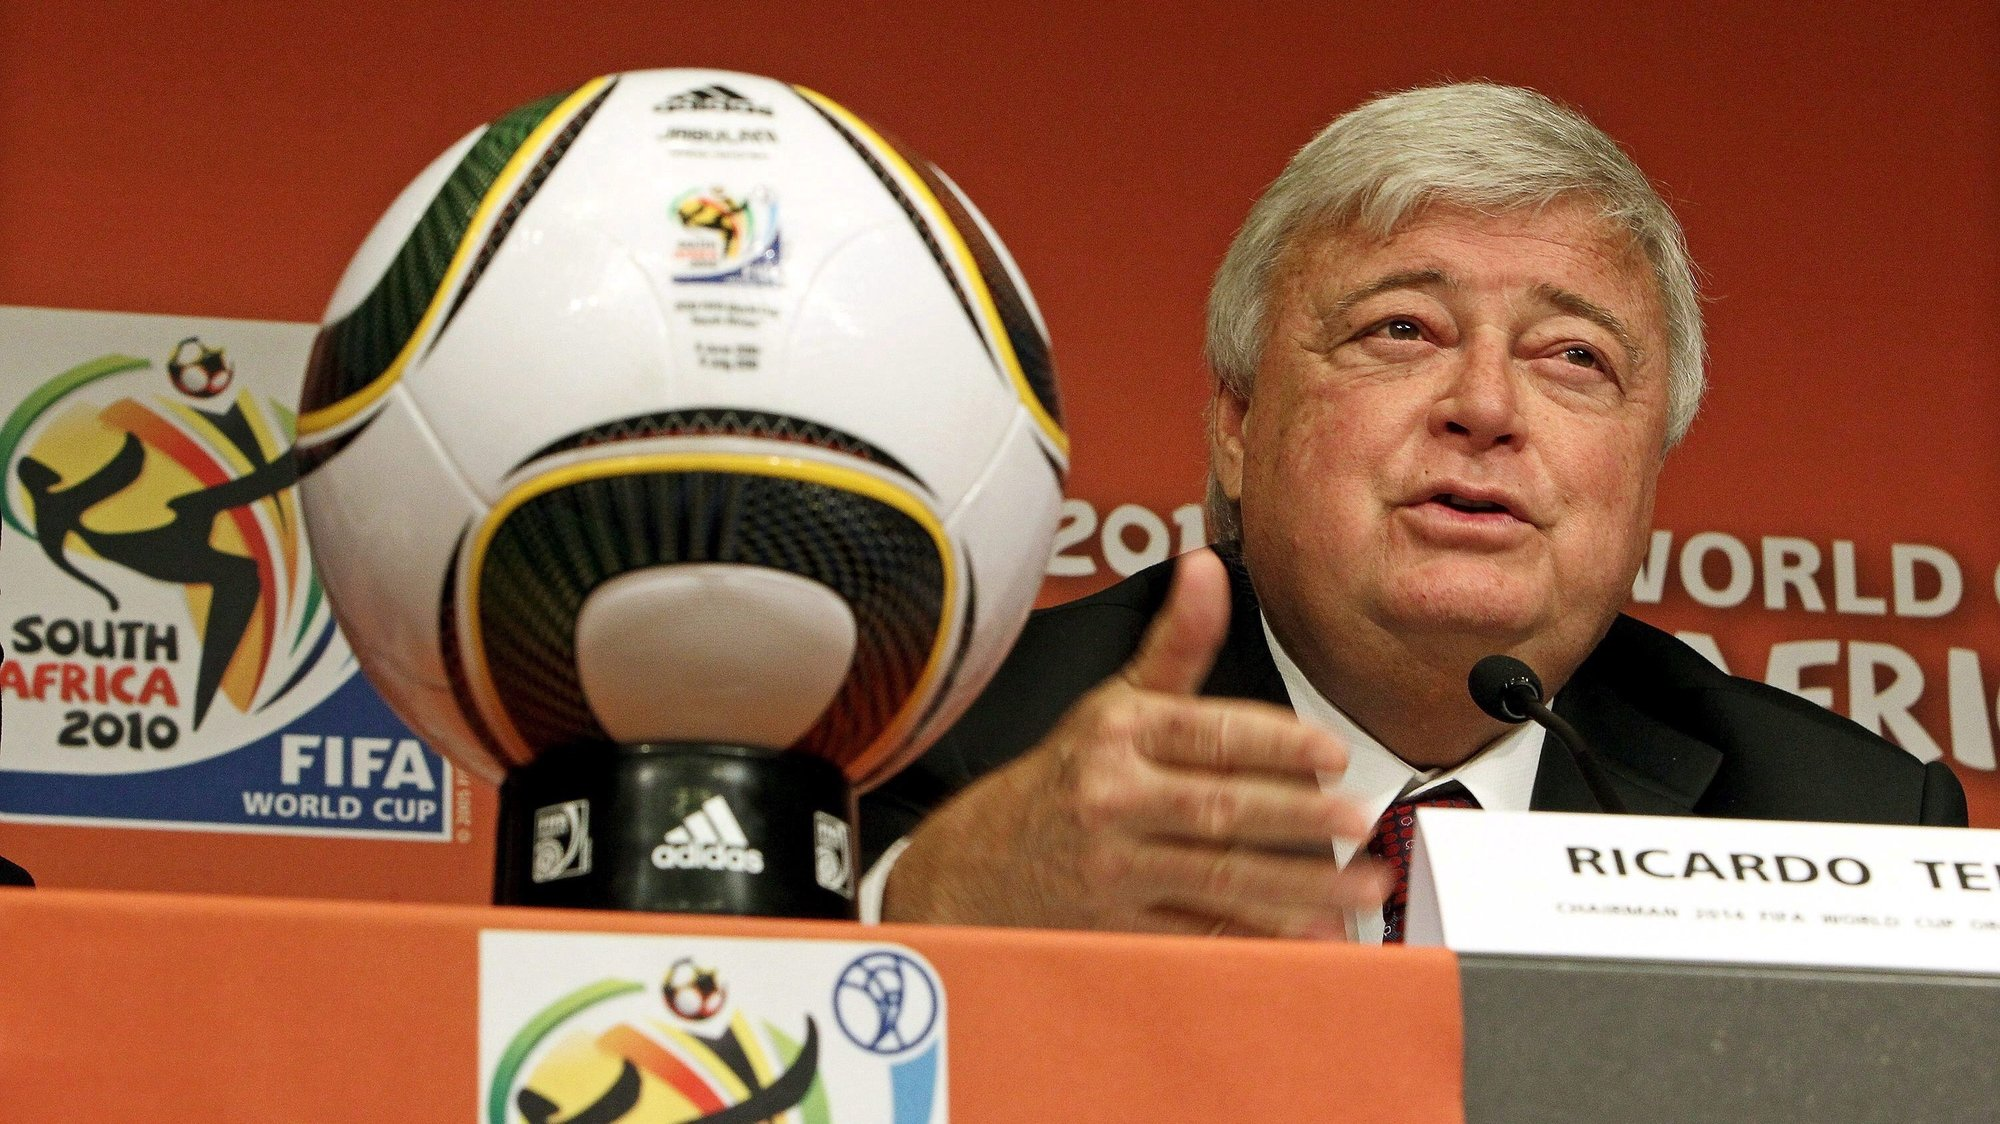 epa03142462 (FILE) A file picture dated 08July 2010 shows the President of the Brazilian Football Confederation CBF and President of the National2014 World Cup organizing committee Ricardo Teixeira attending a press conference in Johannesburg, South Africa. According to the CBF's vice president, Jose Maria Marin, in Rio de Janeiro on 12 March 2012, Ricardo Teixeiraresigned from office after years of allegations of corruption.  EPA/SRDJAN SUKI